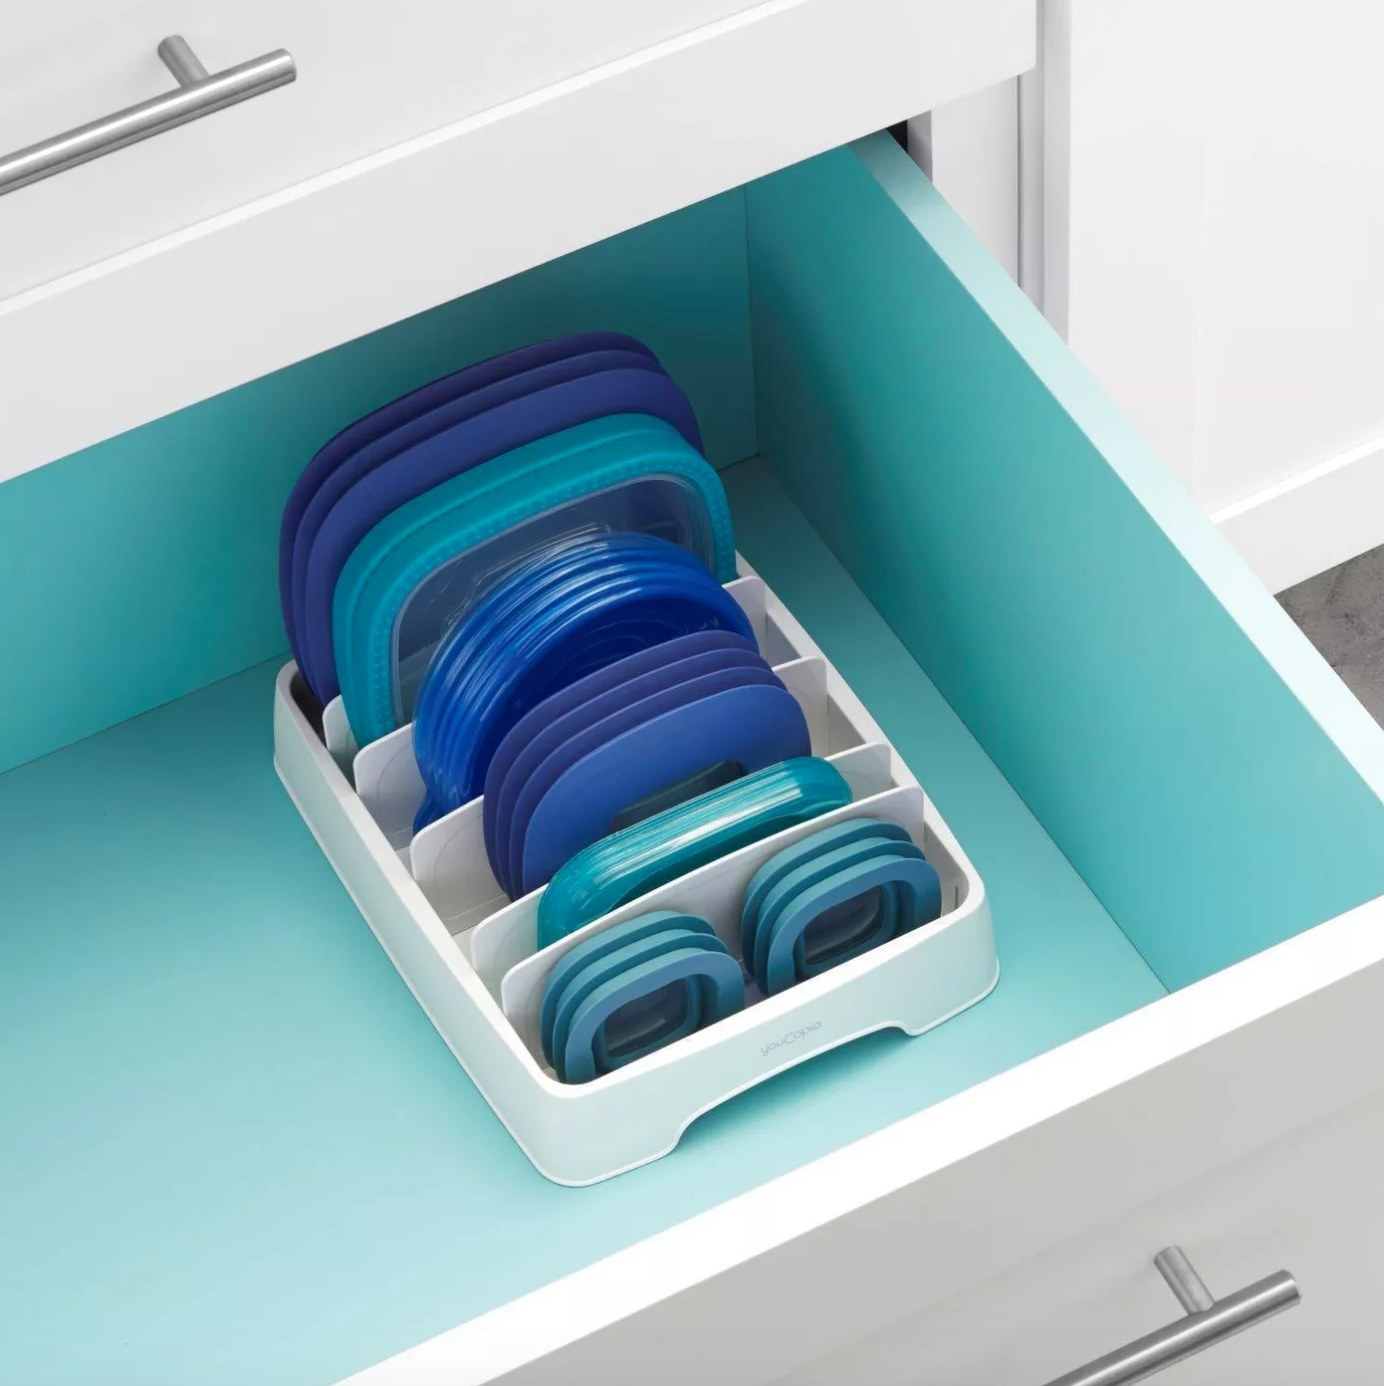 The container lid organizer in white